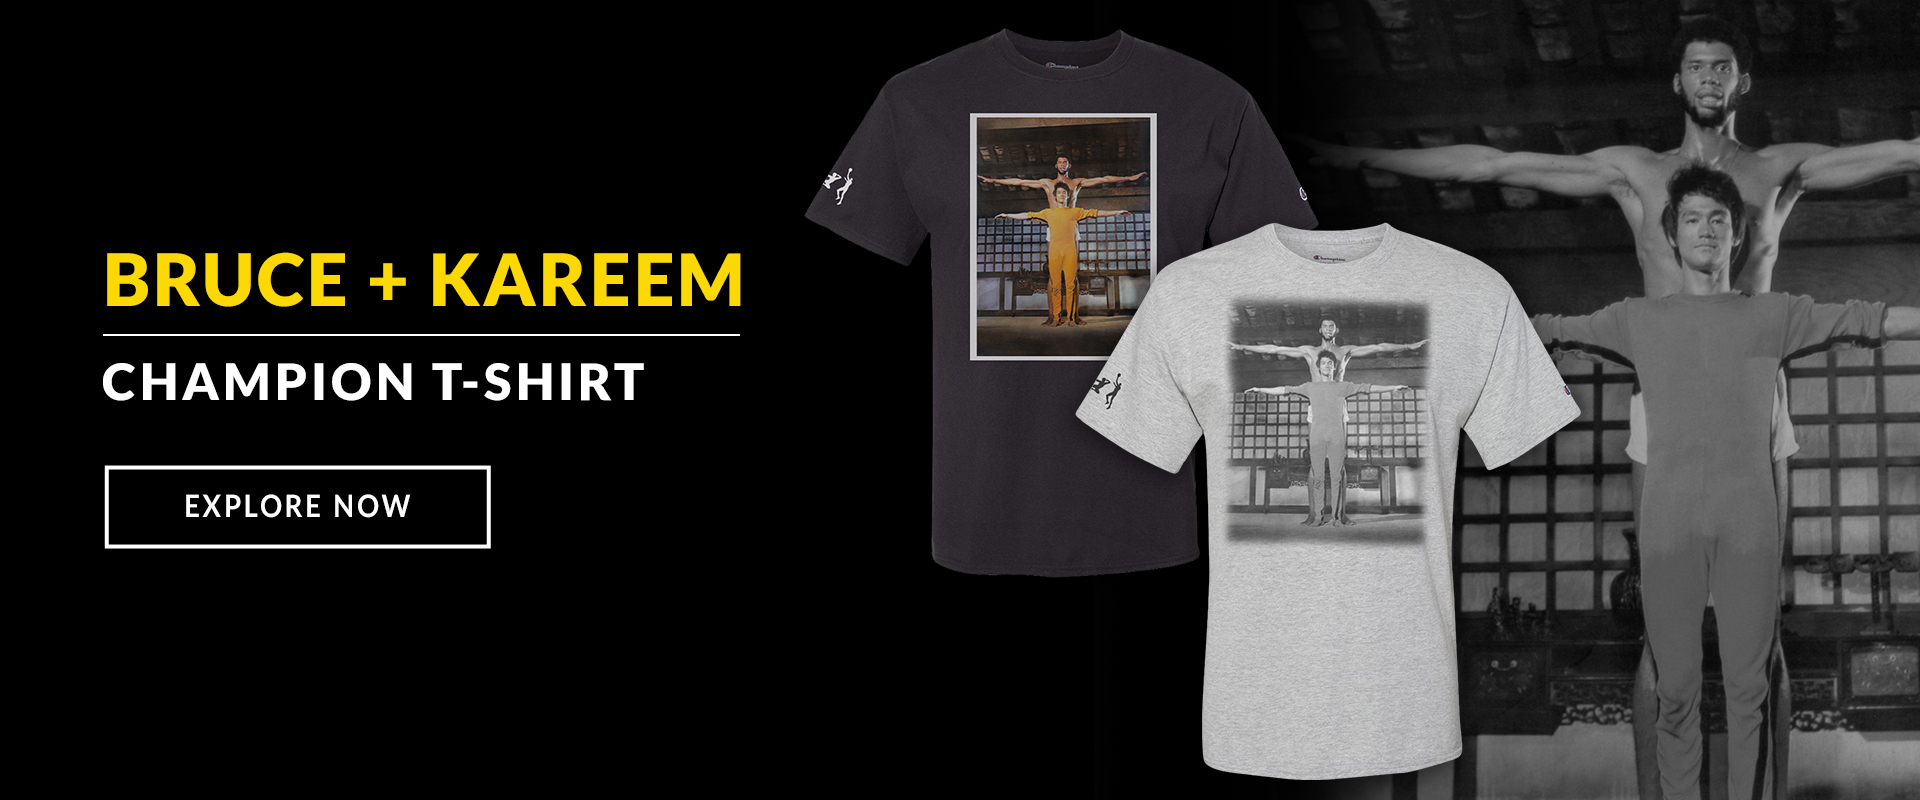 Bruce Lee Kareem Champion T-shirts